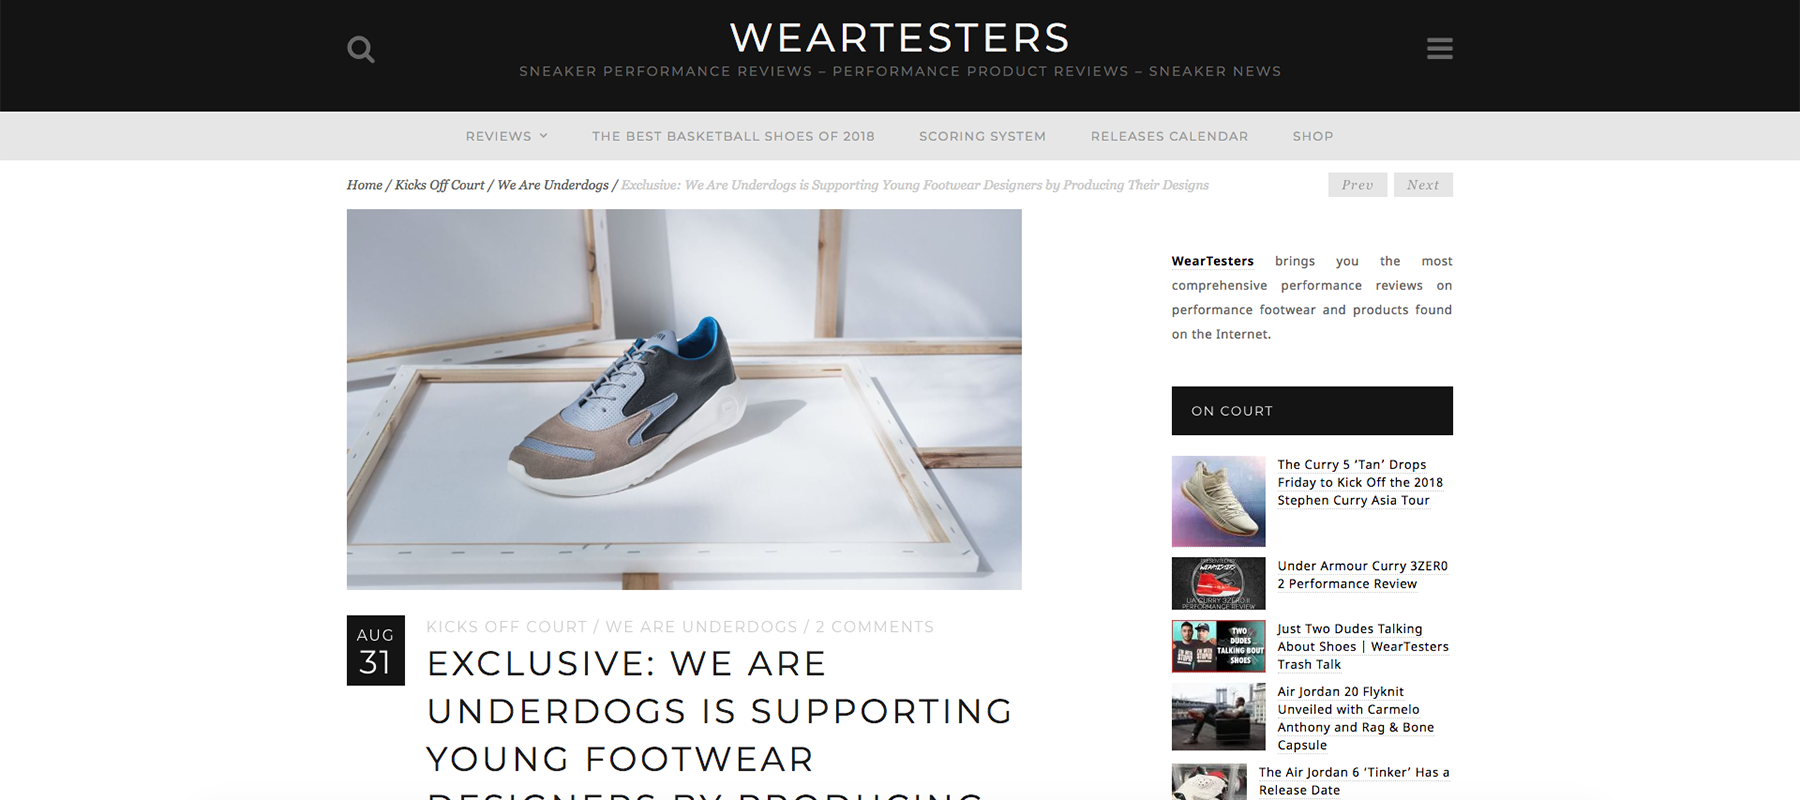 52127db21d3 Answering the sneaker community gap: Look at WearTesters insight – We Are  Underdogs